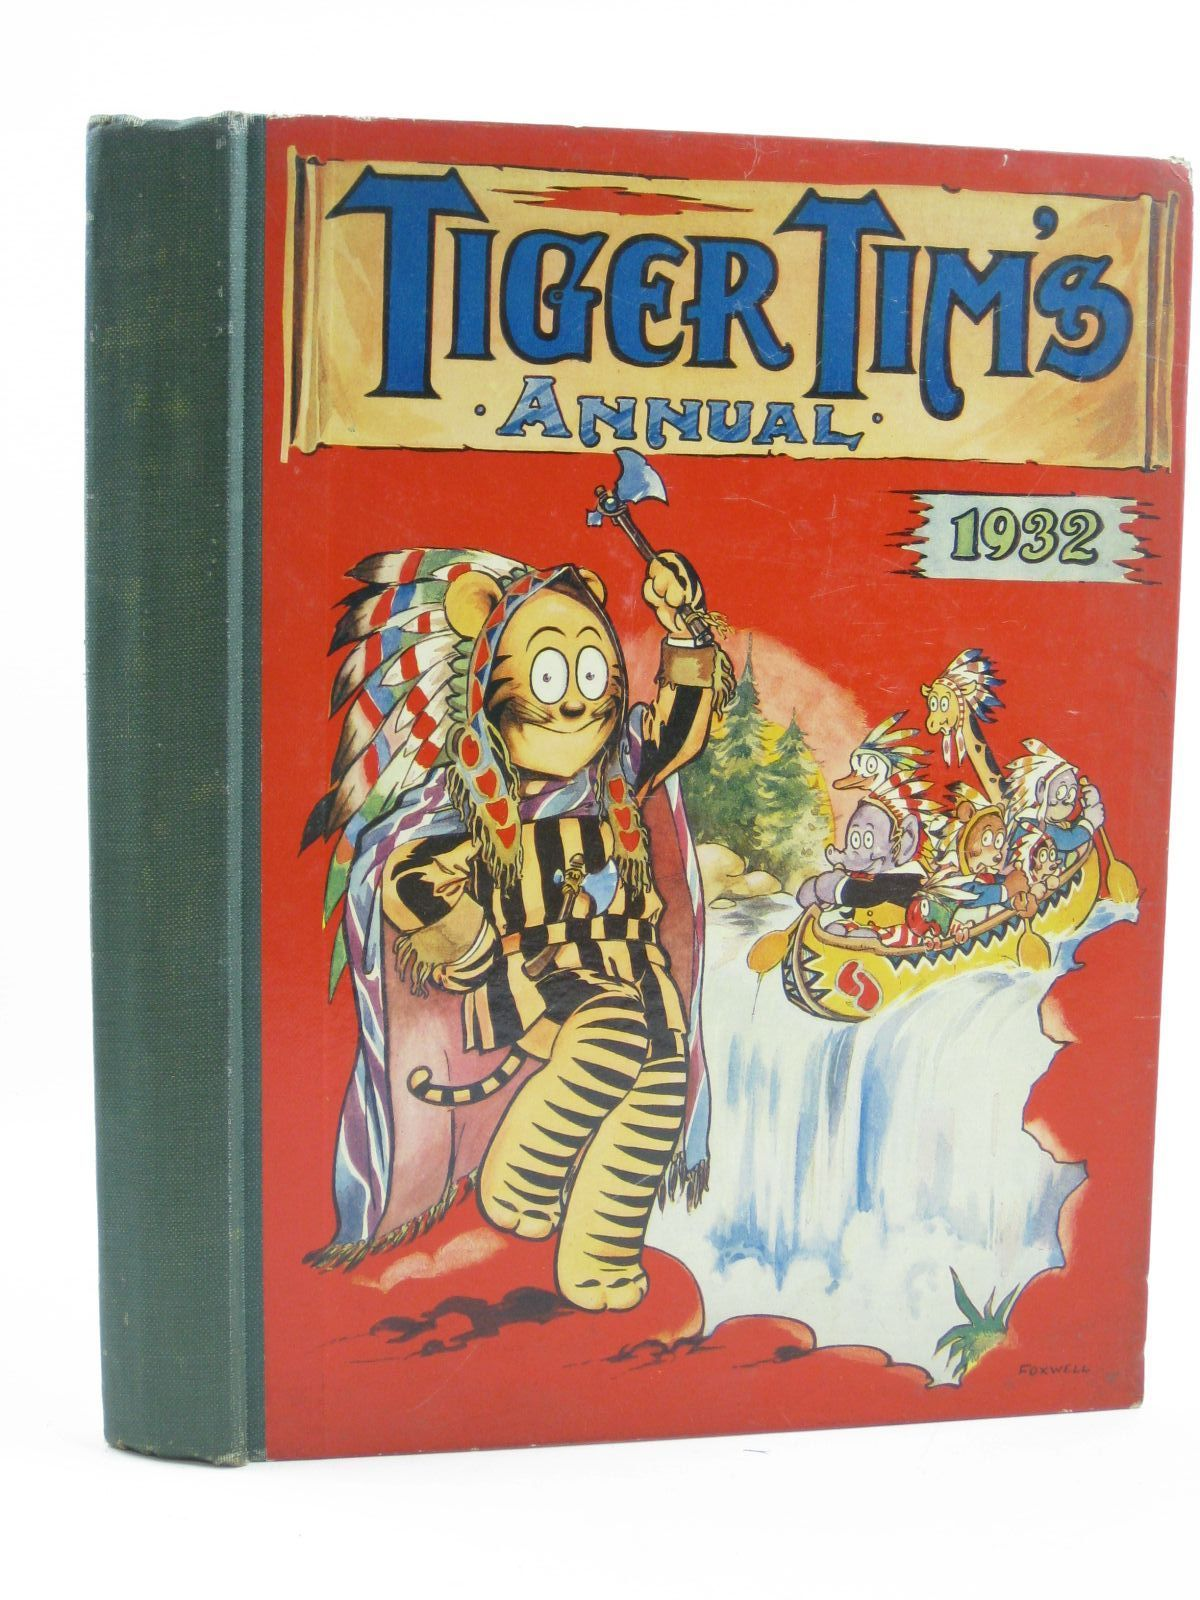 Photo of TIGER TIM'S ANNUAL 1932 illustrated by Foxwell, Herbert Mccready, H. et al., published by The Amalgamated Press (STOCK CODE: 1507147)  for sale by Stella & Rose's Books